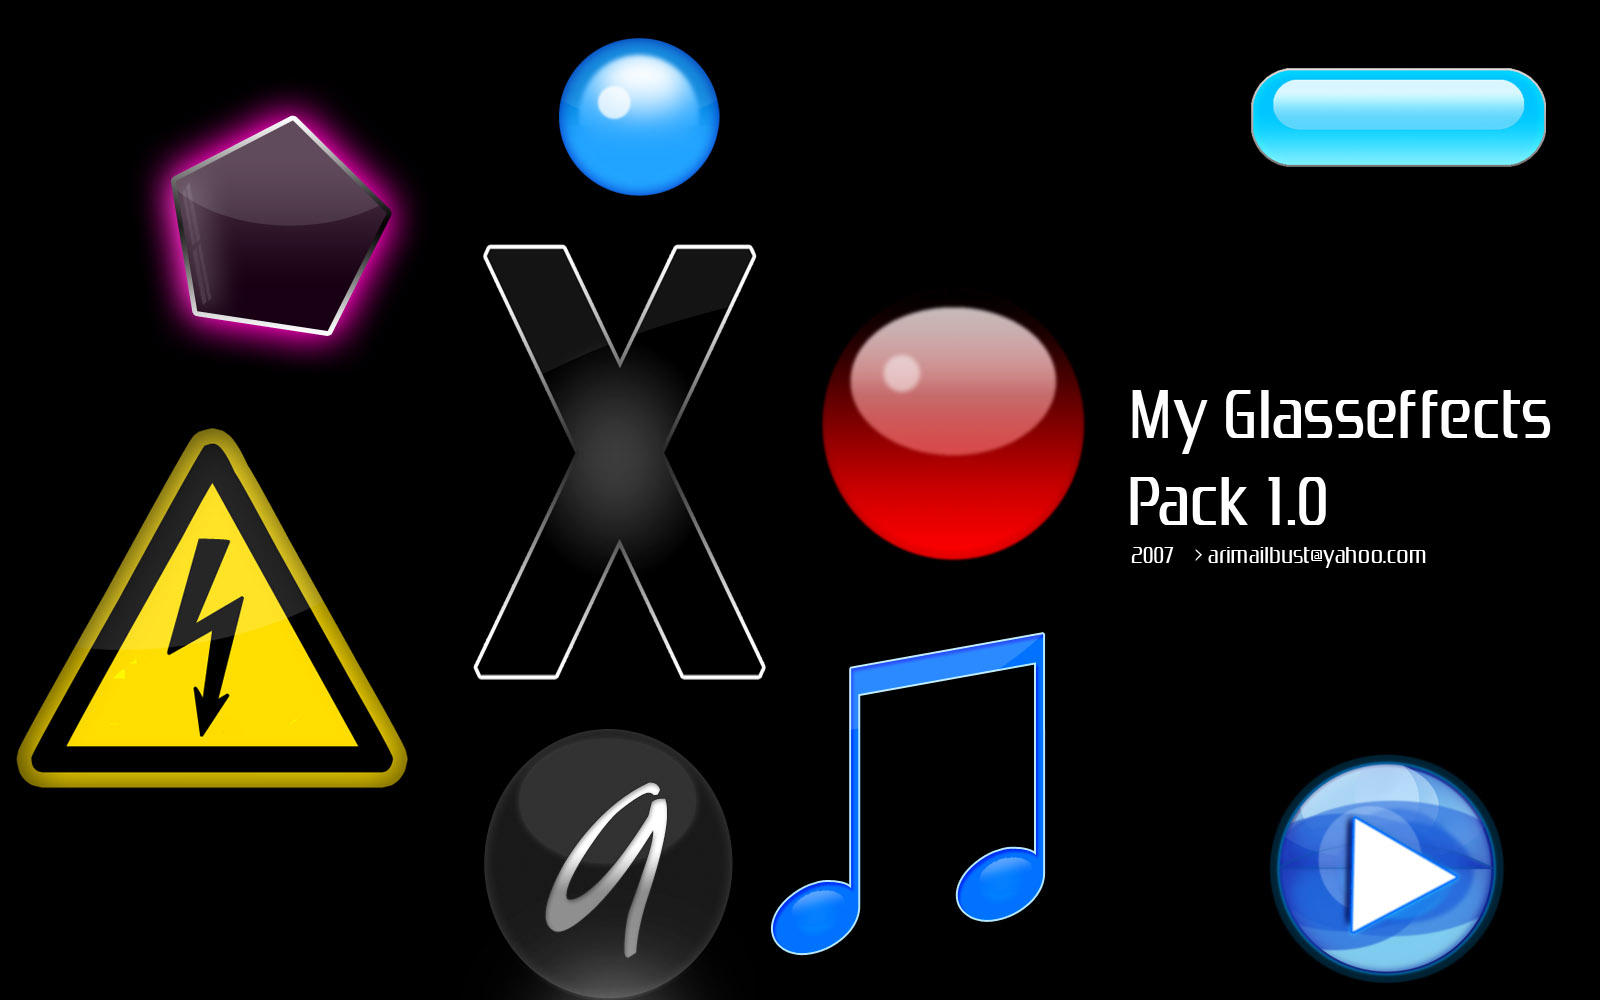 My Glasseffects Pack 1.0 by operian